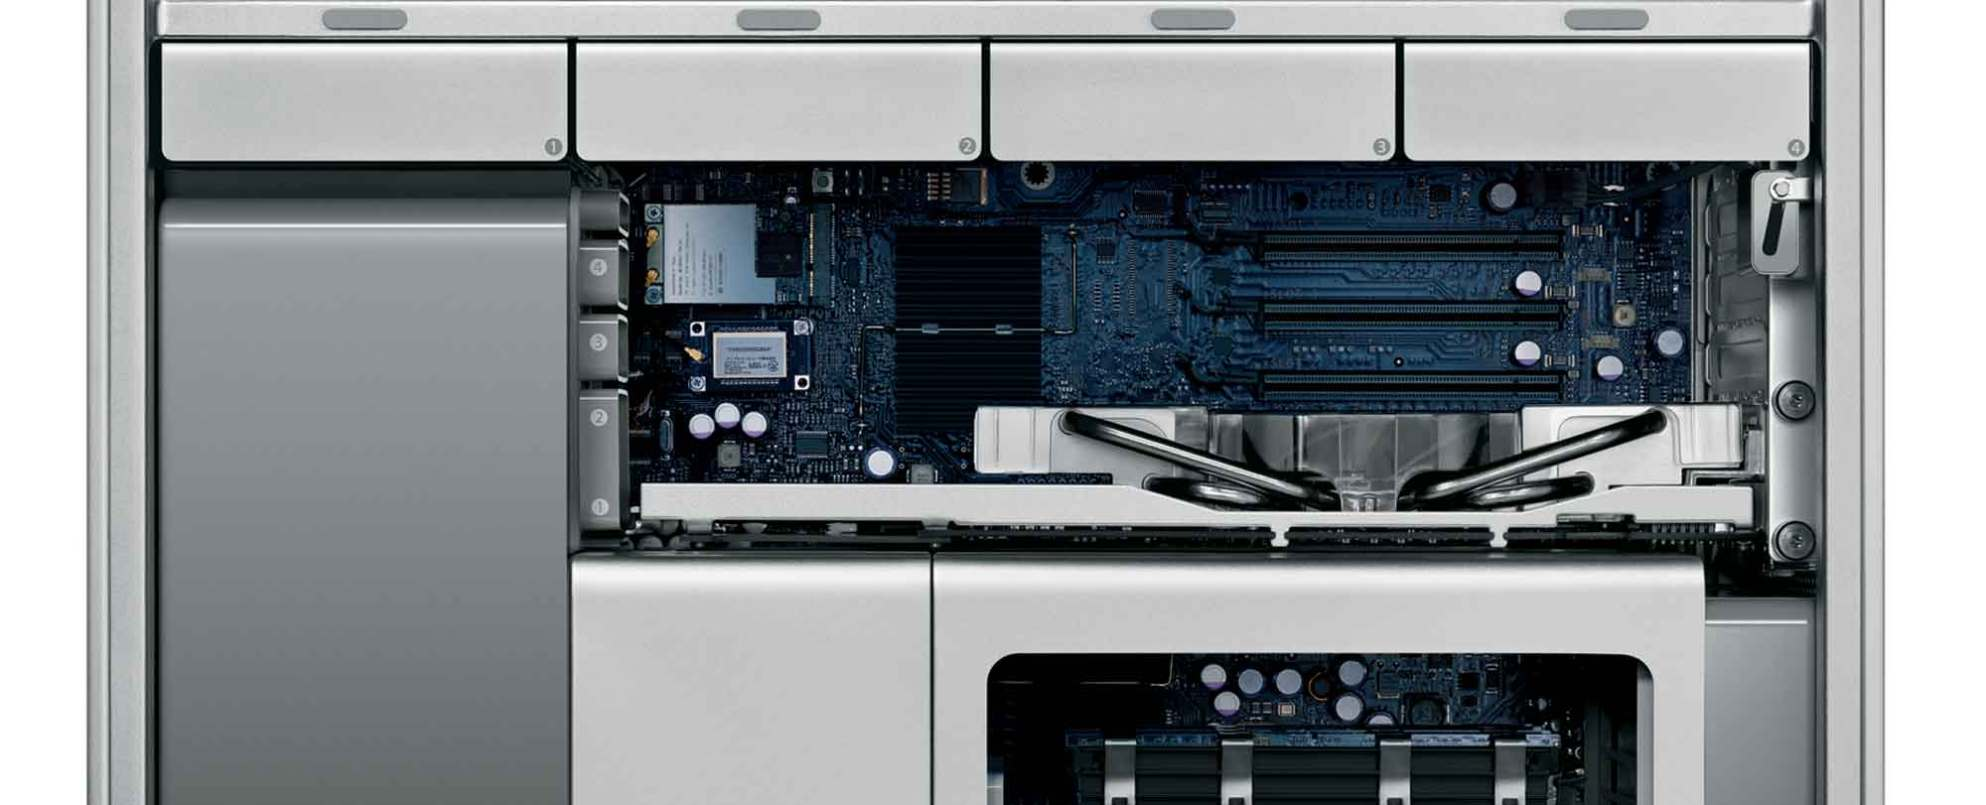 Mac Pro to be banned from Sale in Europe